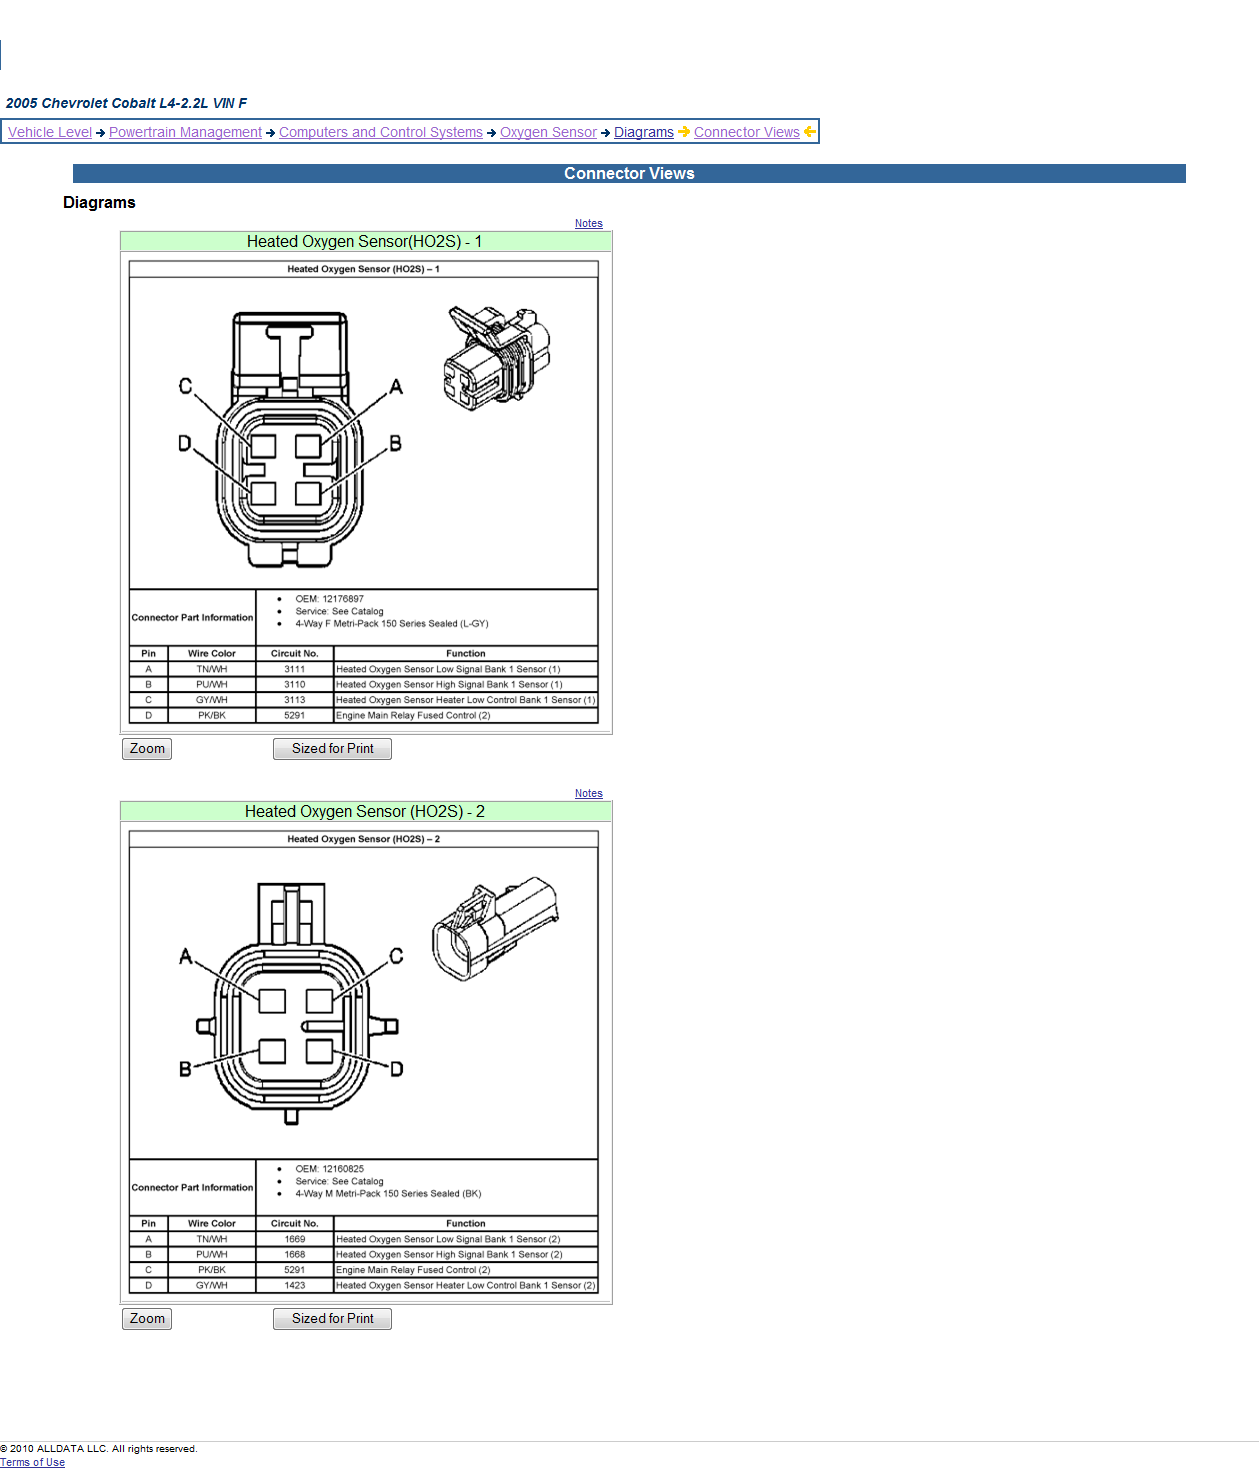 a4deda12a4f6d49137b2c3198e0ce0ff sensor wiring diagram sie o2 free wiring diagrams readingrat net  at bakdesigns.co